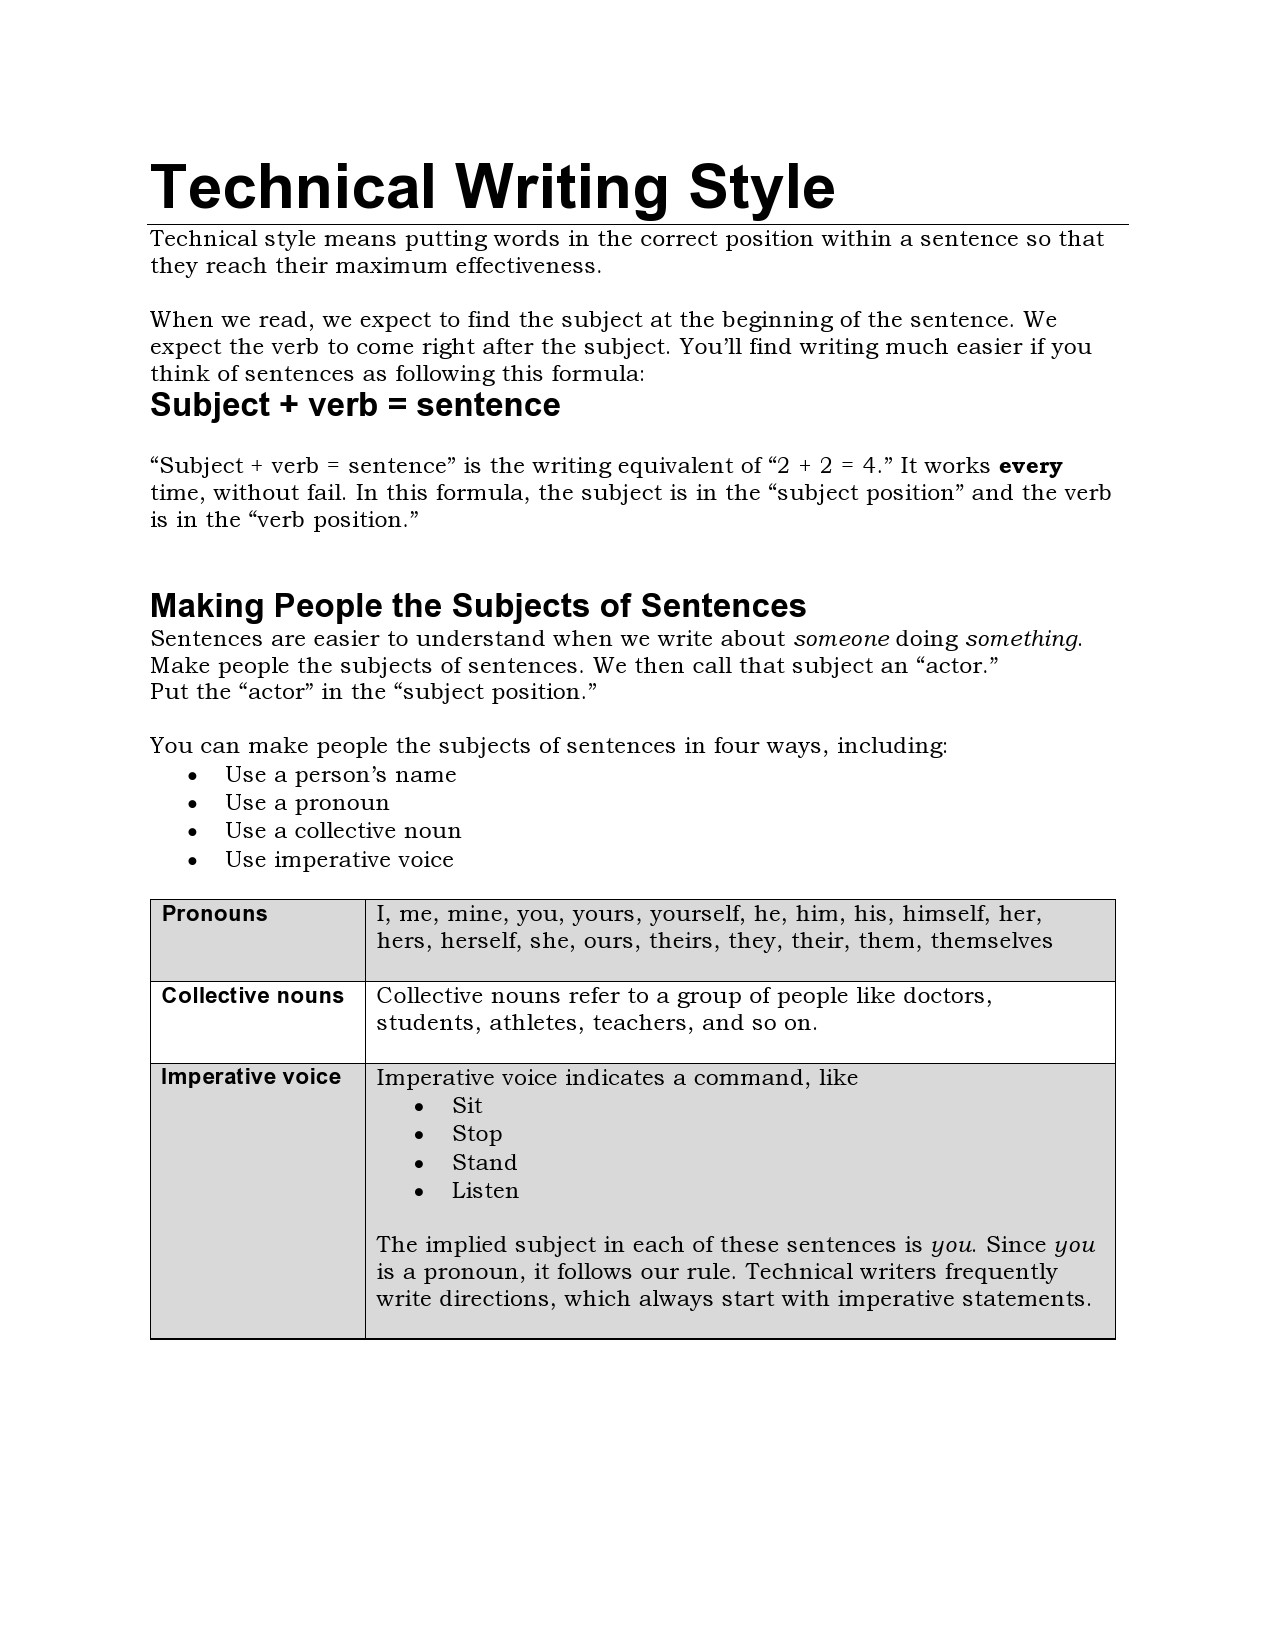 Free technical writing examples 11